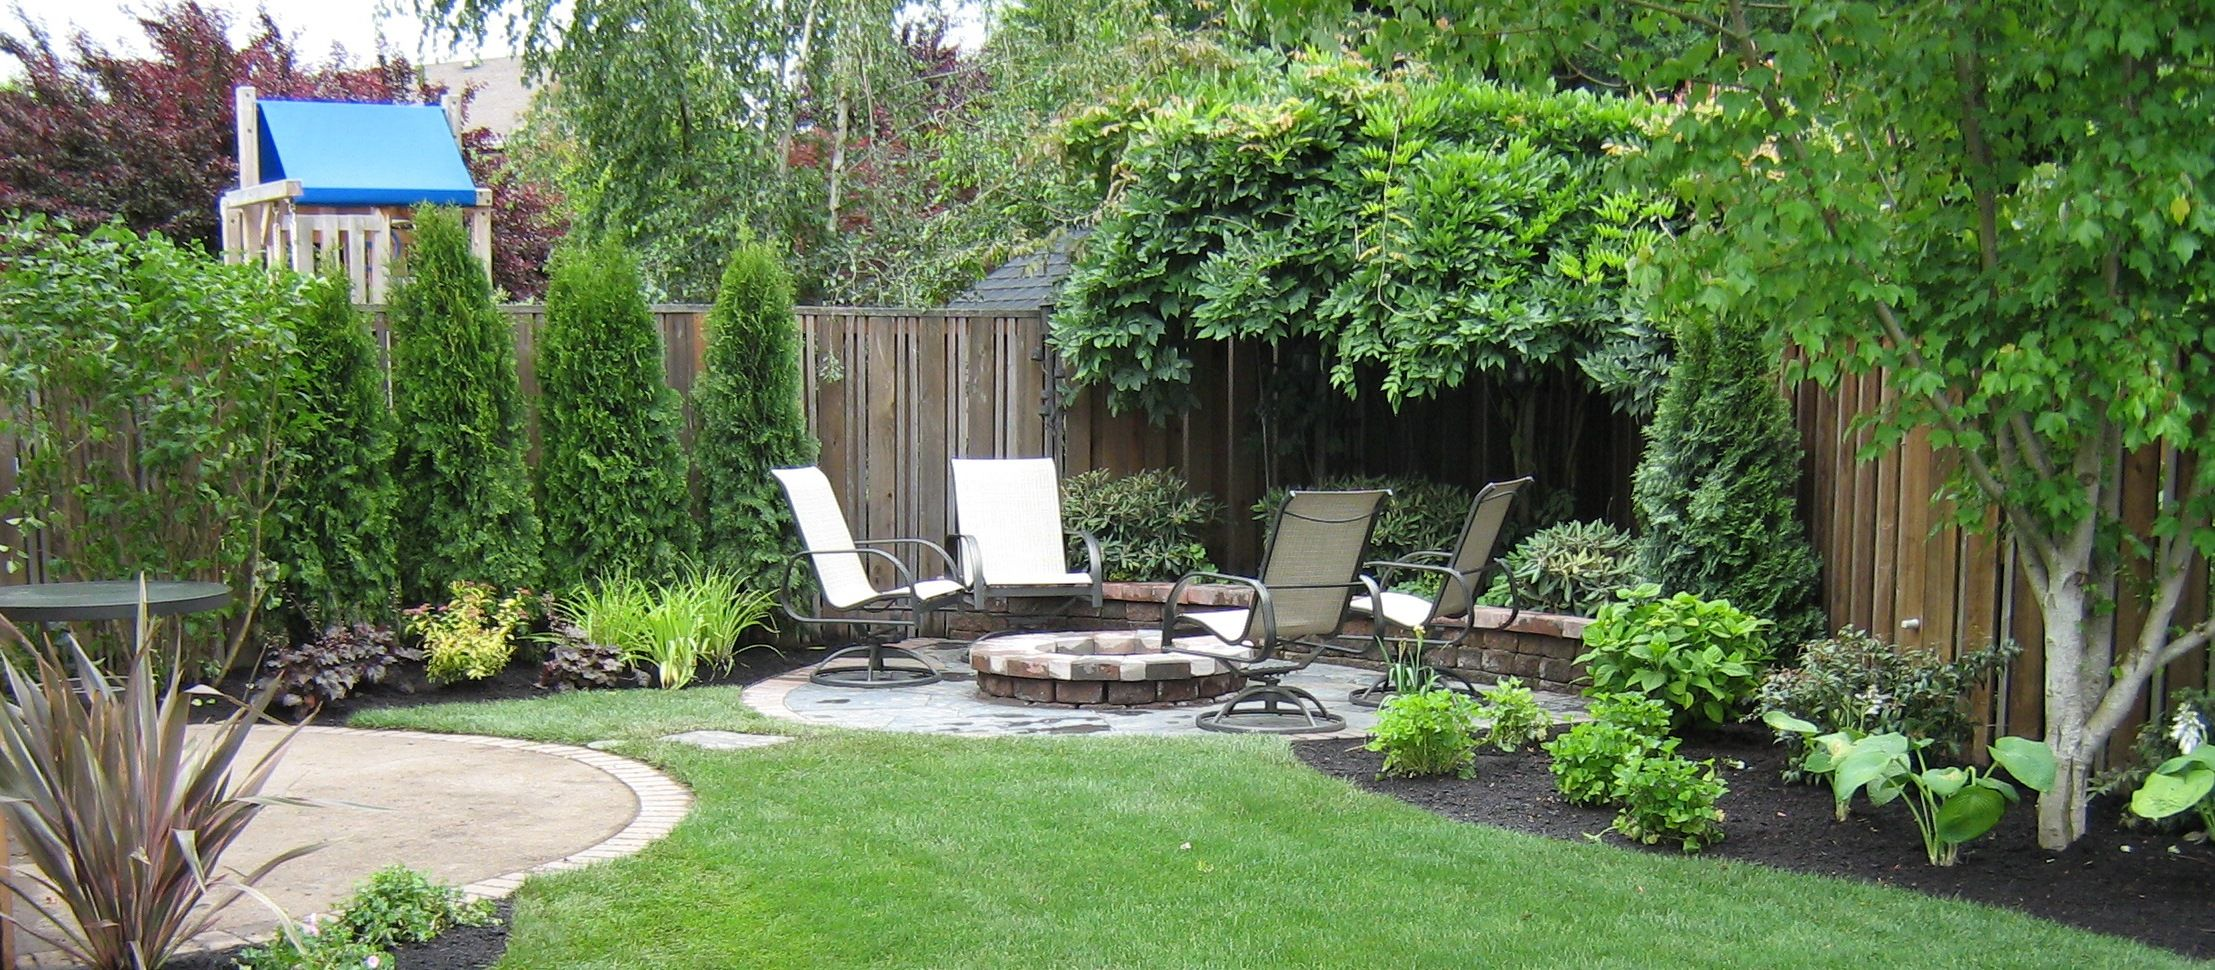 Small backyard landscaping ideas photos garden design for Backyard garden